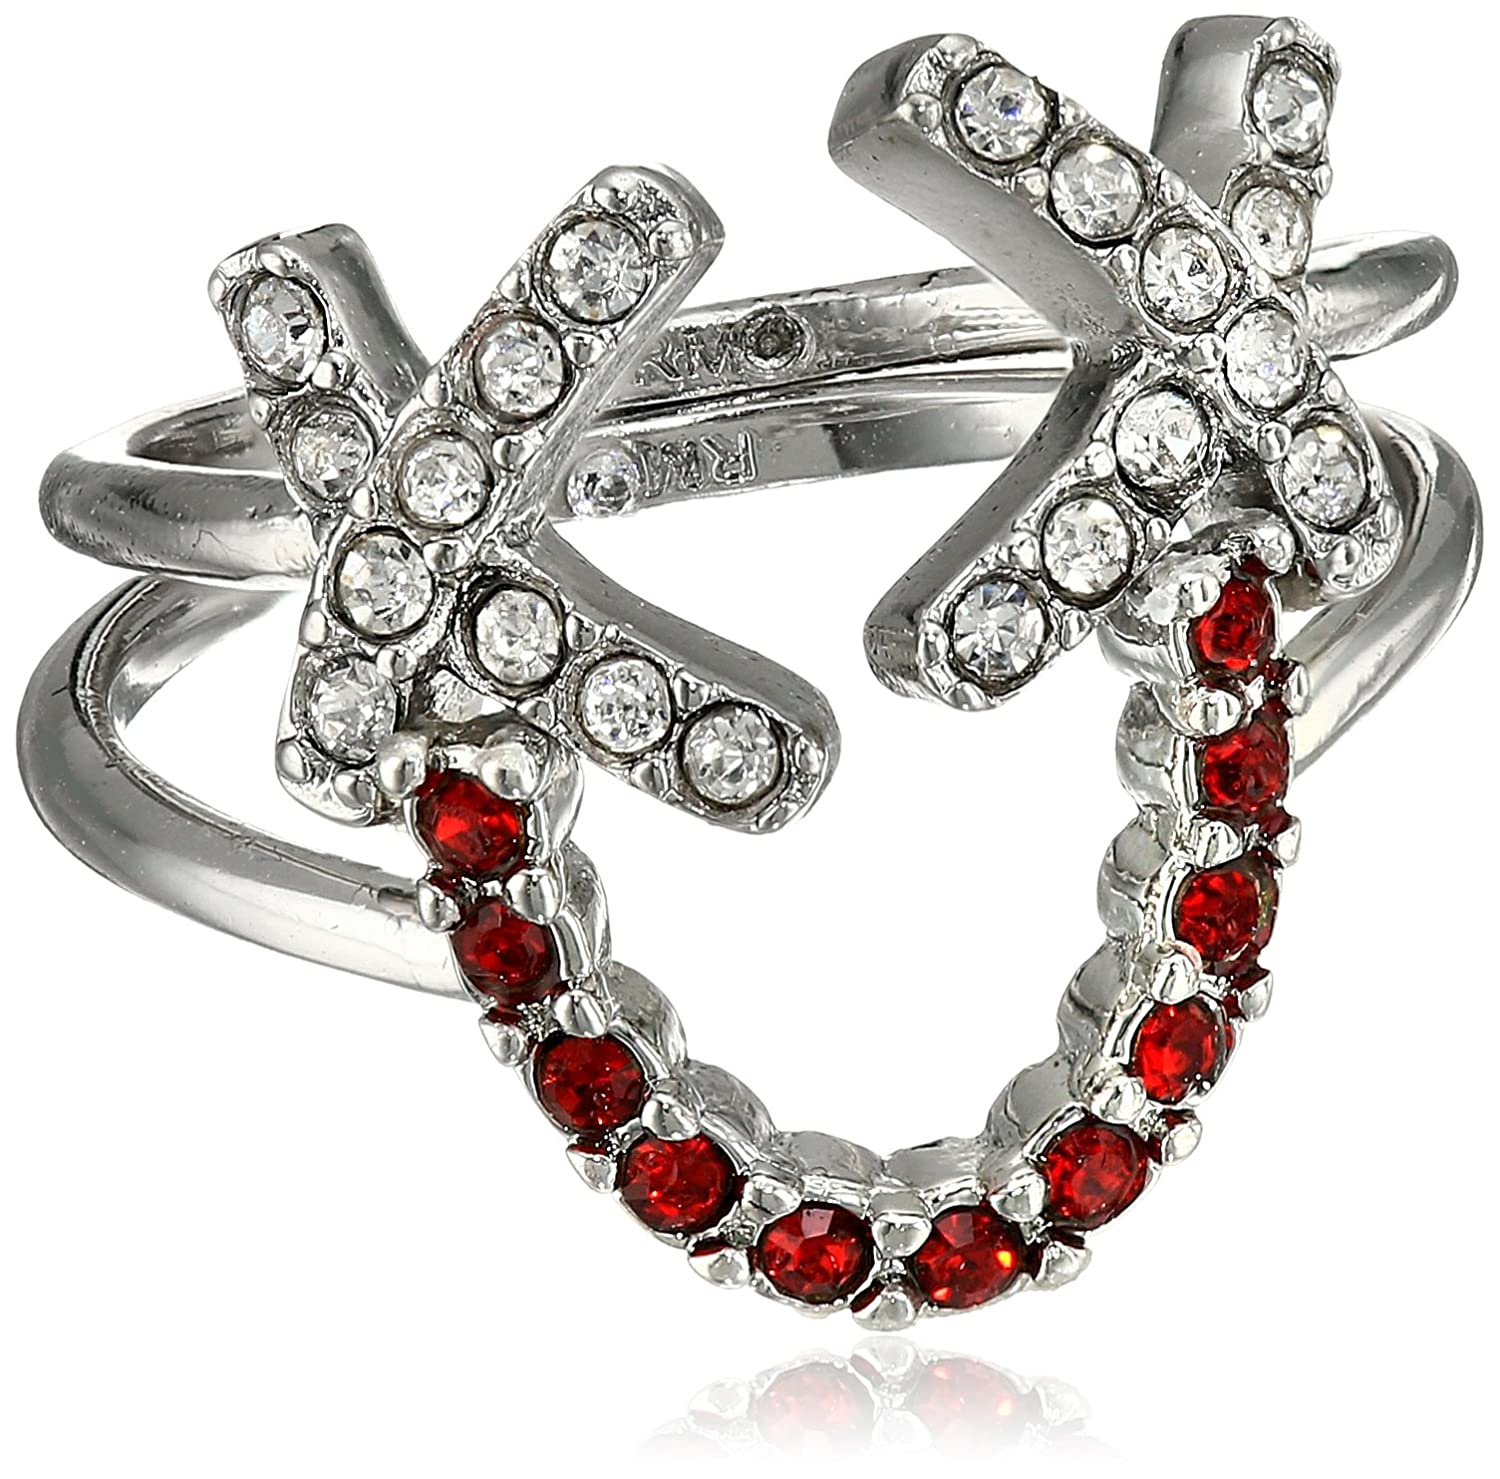 Rebecca Minkoff Smile Face Stackable Ring, Size 7 Rebecca Minkoff Jewelry 065584IR986